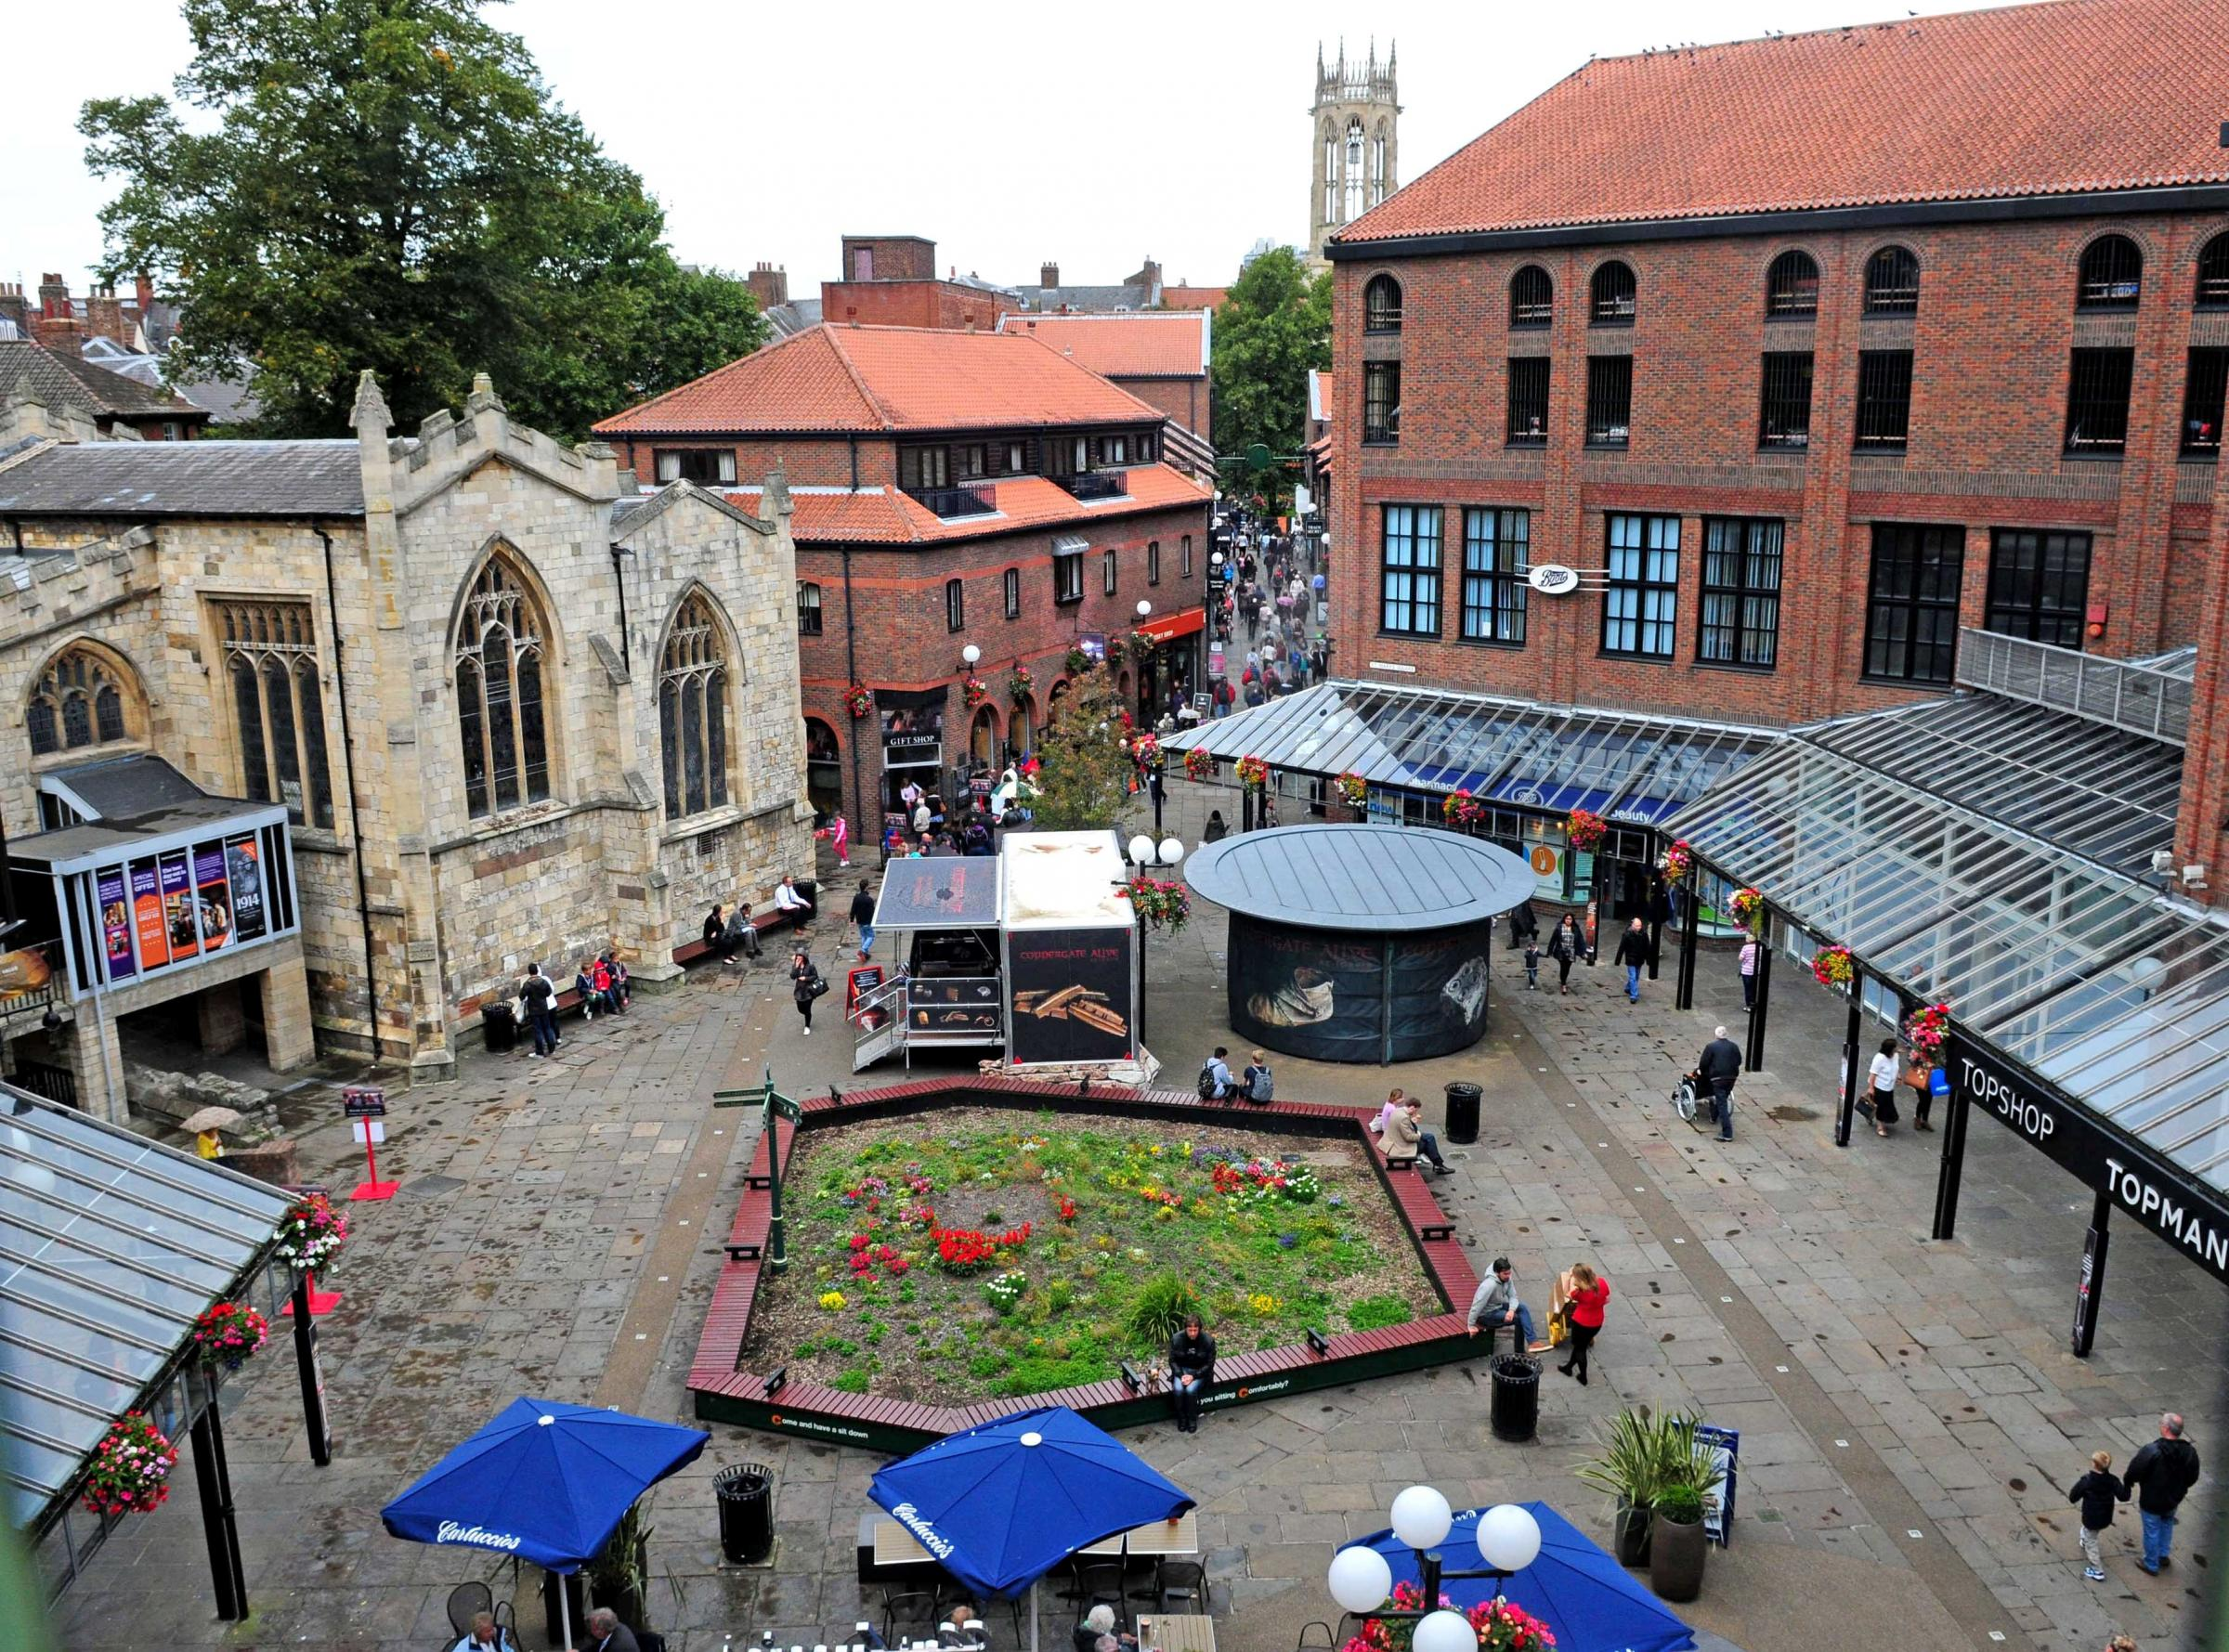 The Coppergate Shopping Centre in York